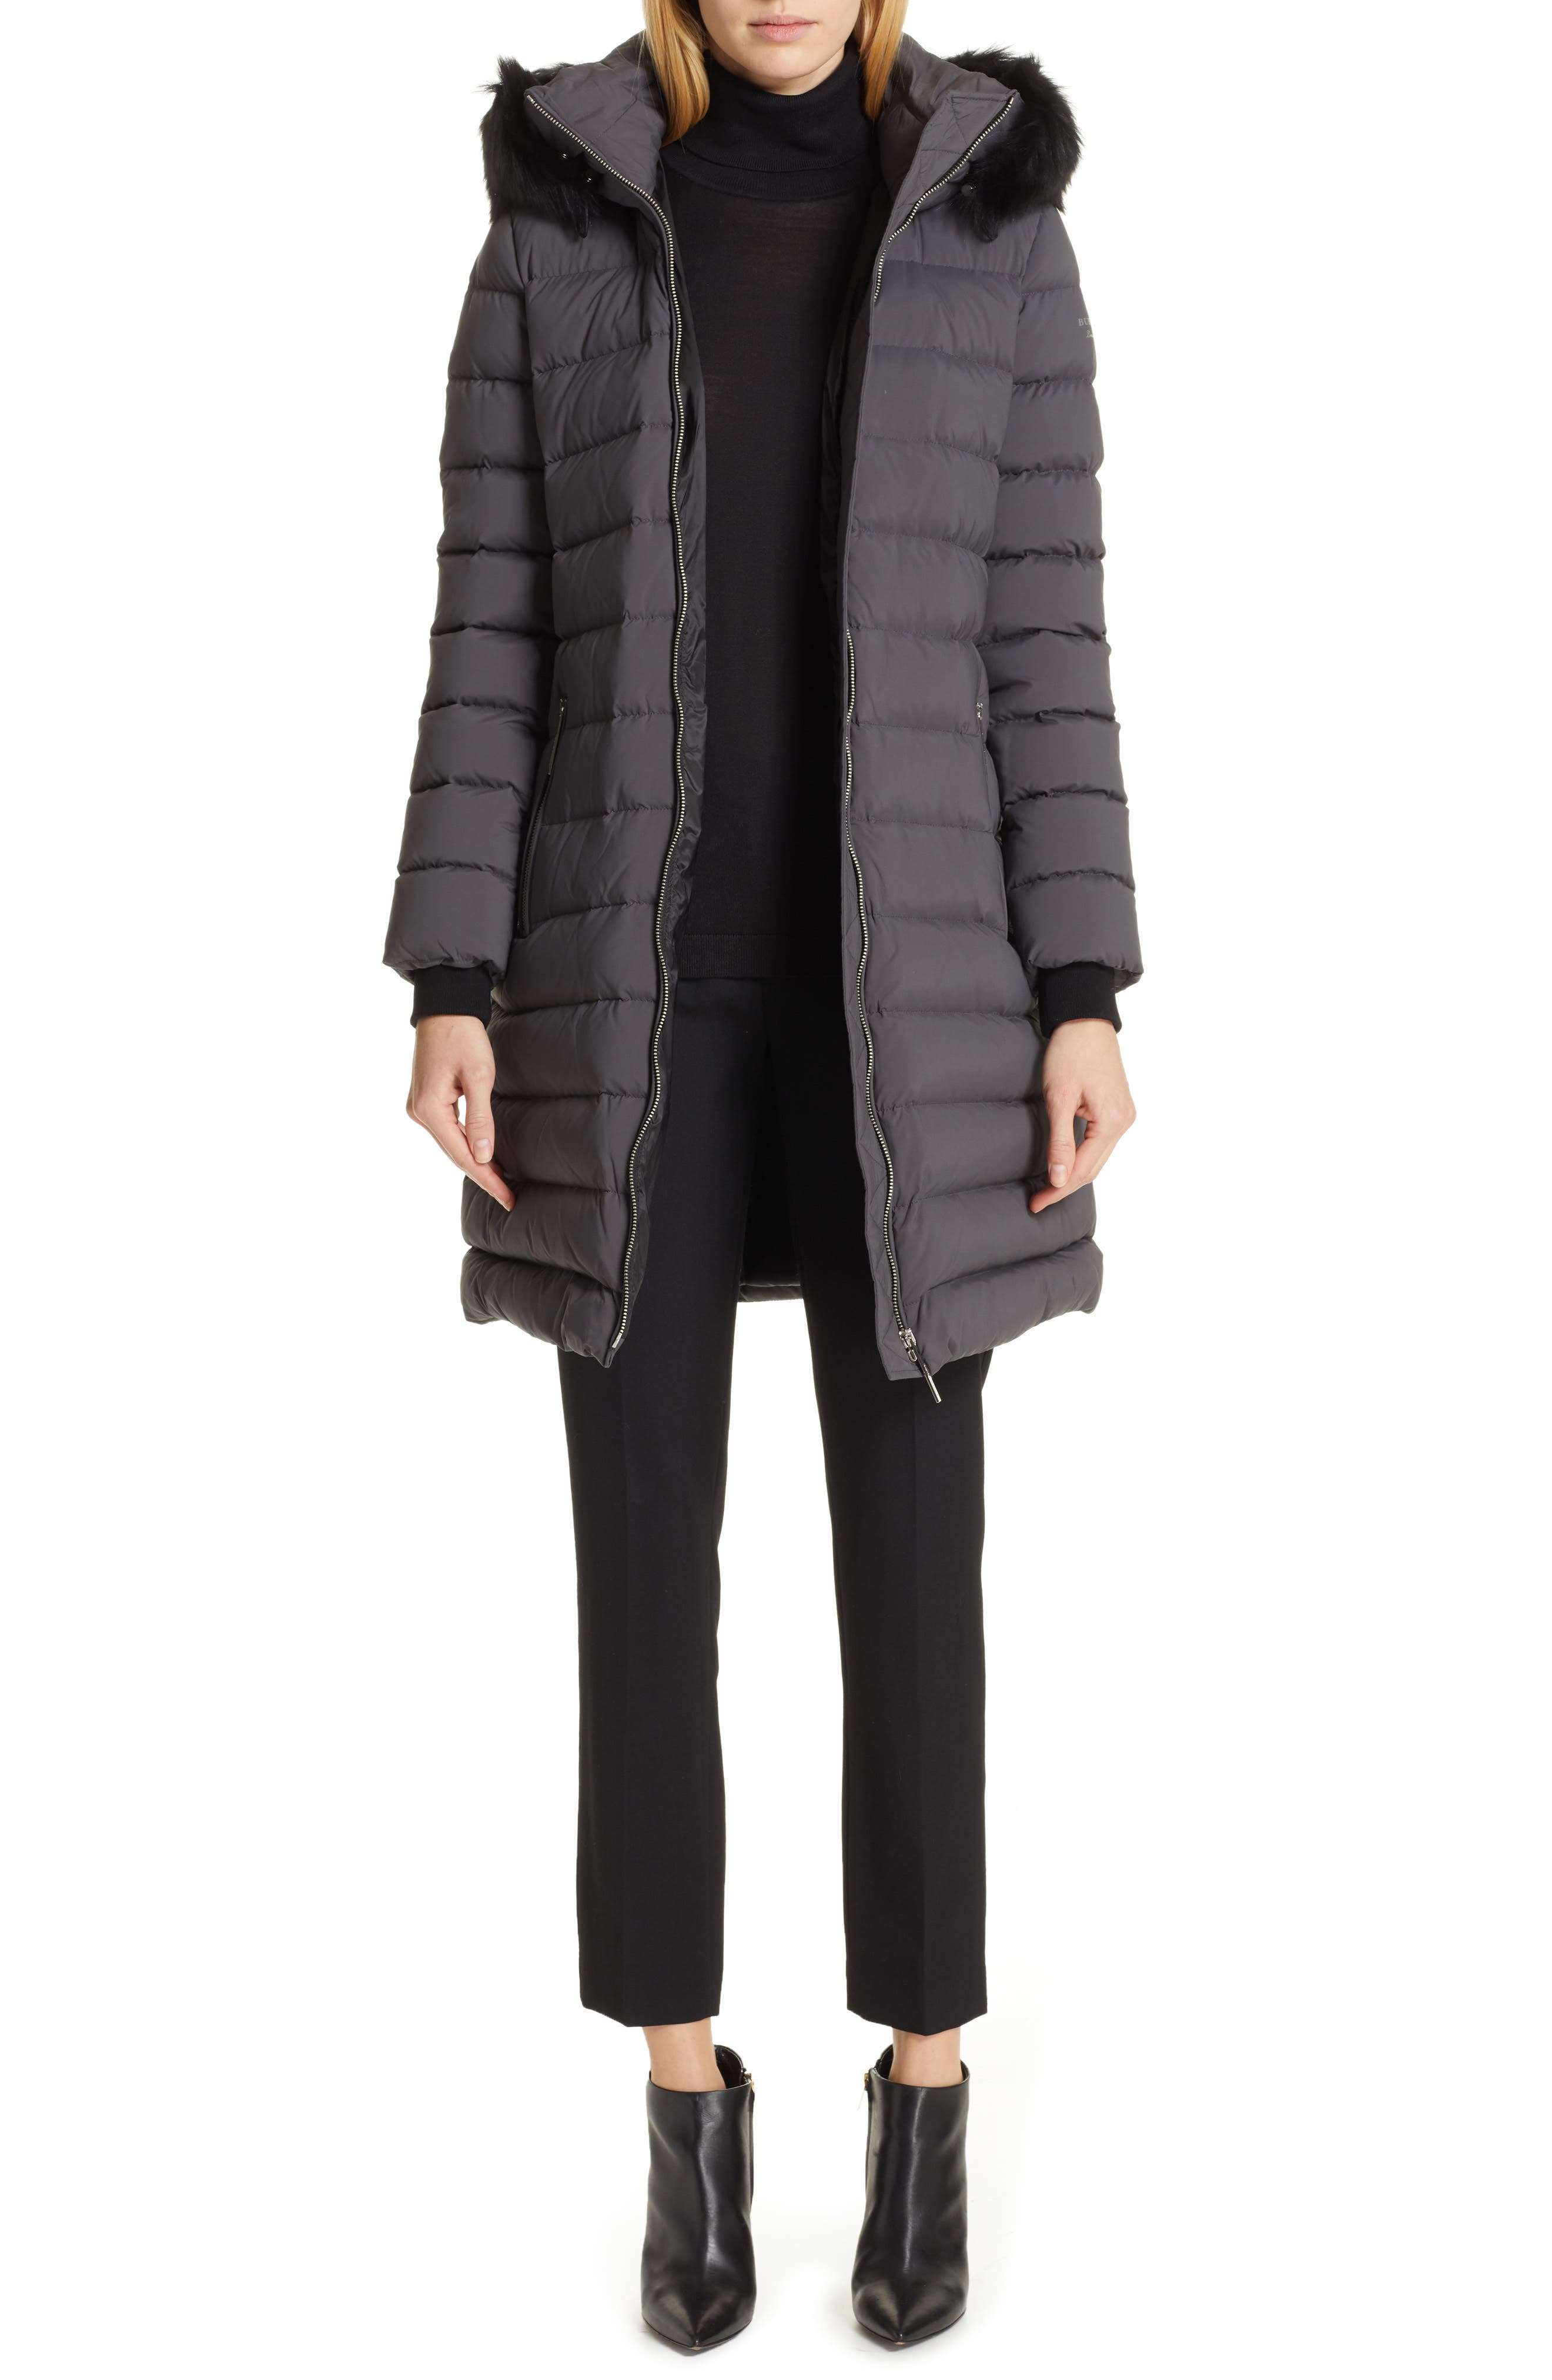 BURBERRY, Limehouse Quilted Down Puffer Coat with Removable Genuine Shearling Trim, Alternate thumbnail 8, color, MID GREY